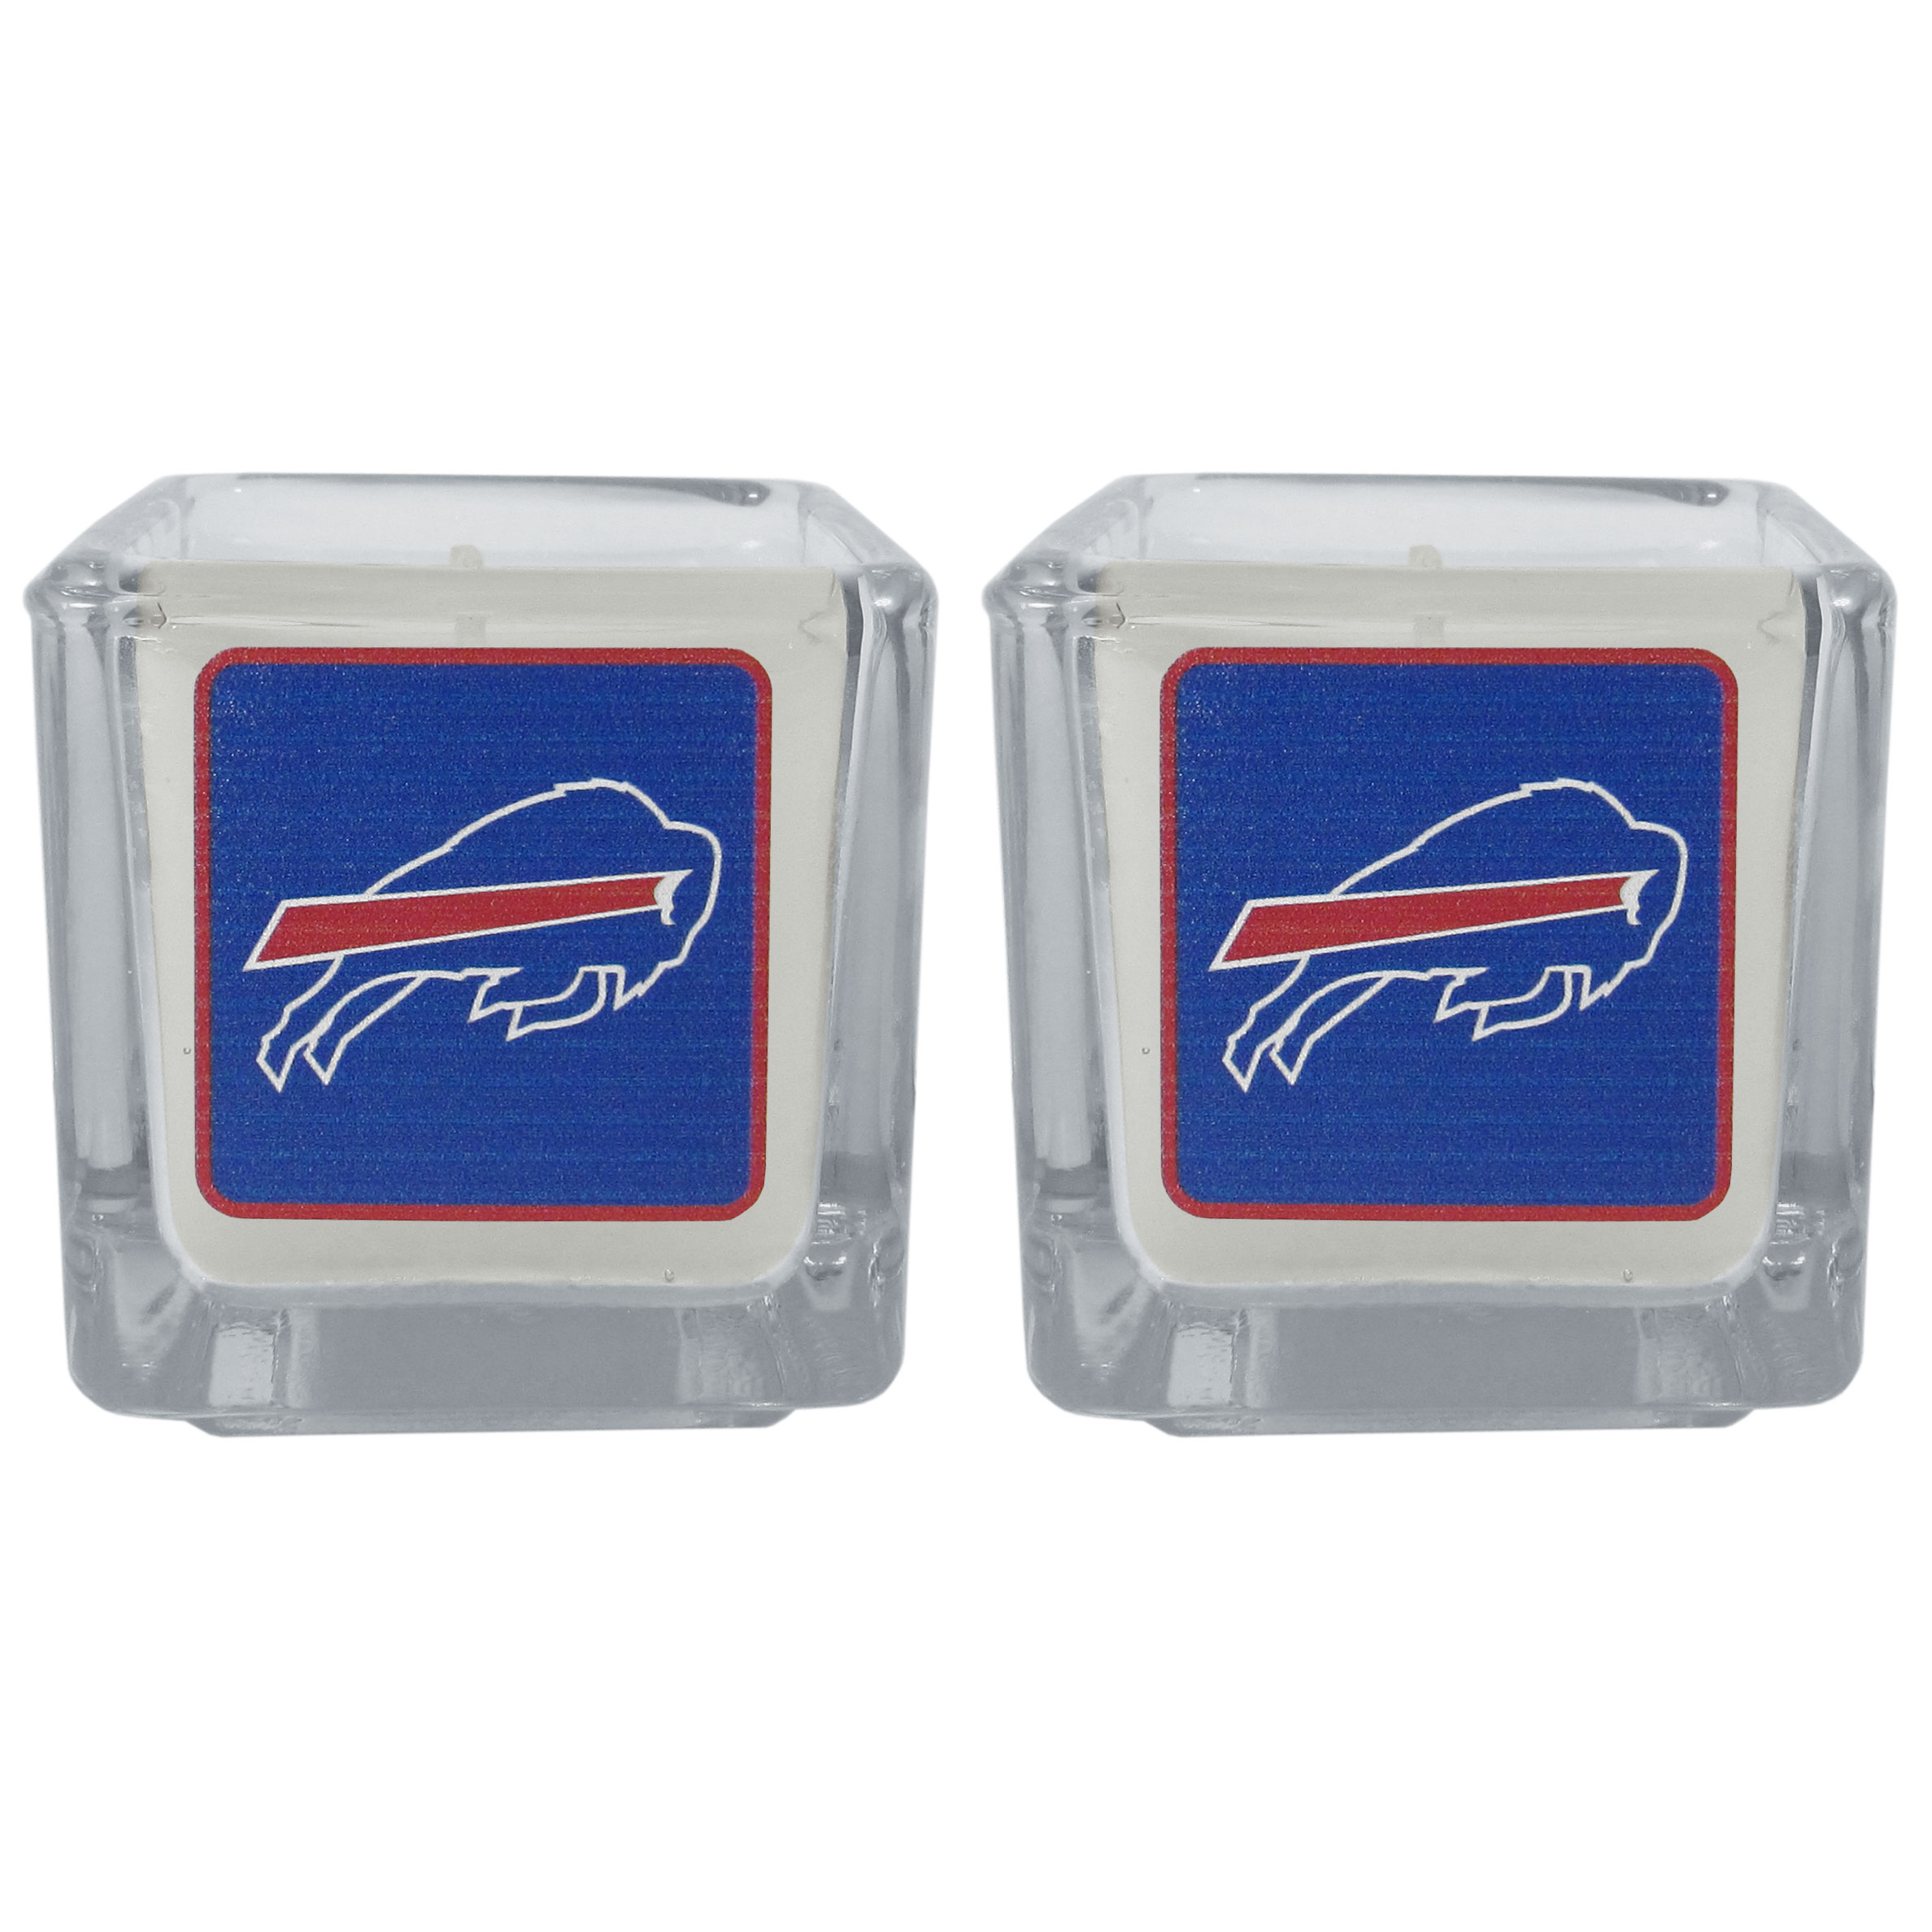 Buffalo Bills Graphics Candle Set - Our candle set features 2 lightly vanilla scented candles with the Buffalo Bills logo expertly printed on front. The candles are 2 inches tall in the votive style.